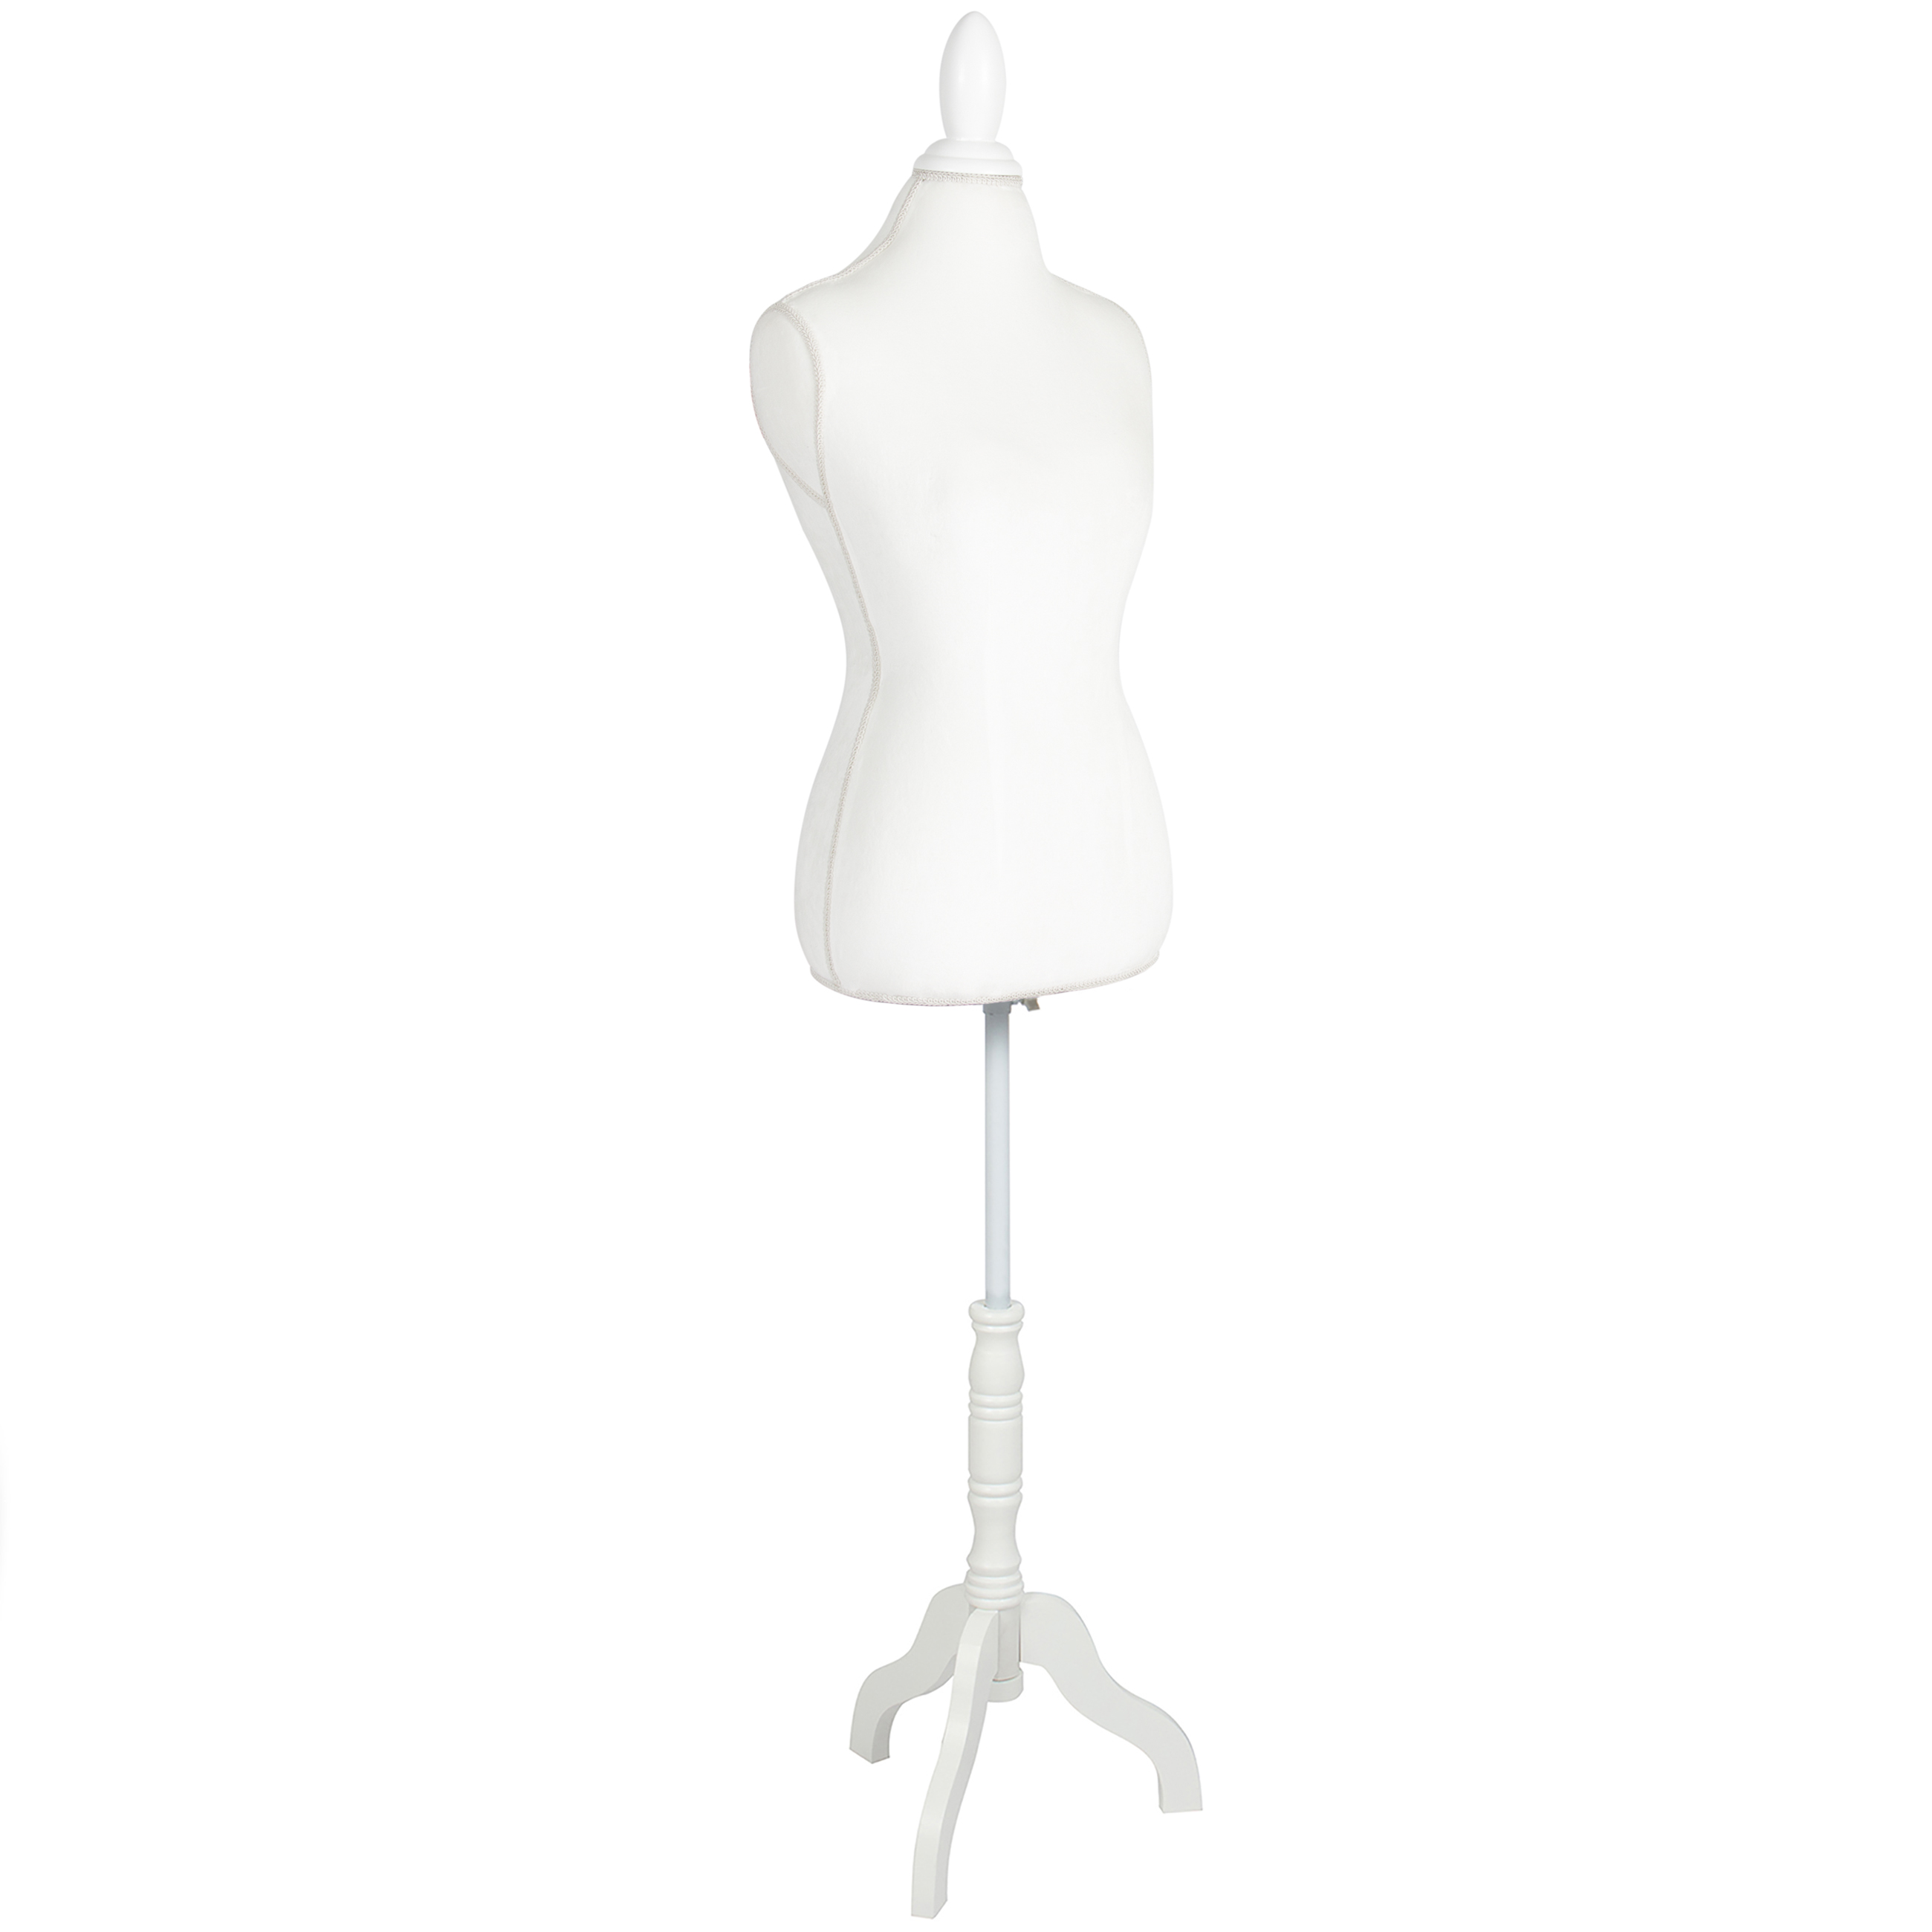 Best Choice Products Female Mannequin Torso Display w/ Wooden Tripod Stand, Adjustable Height - White